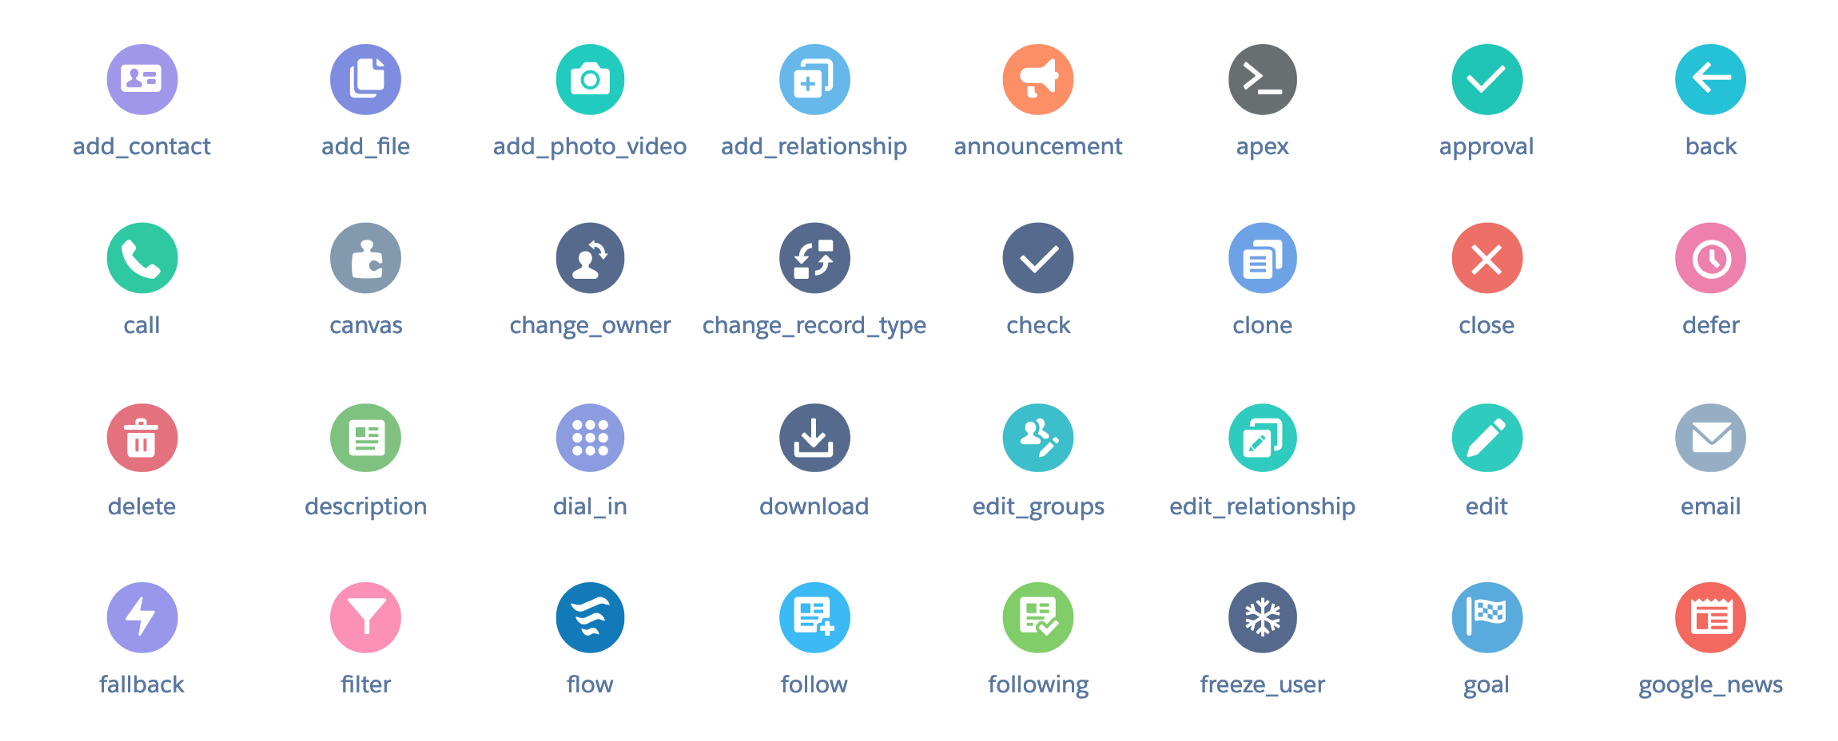 Css classes for SLDS Icons — An easier way to use them!